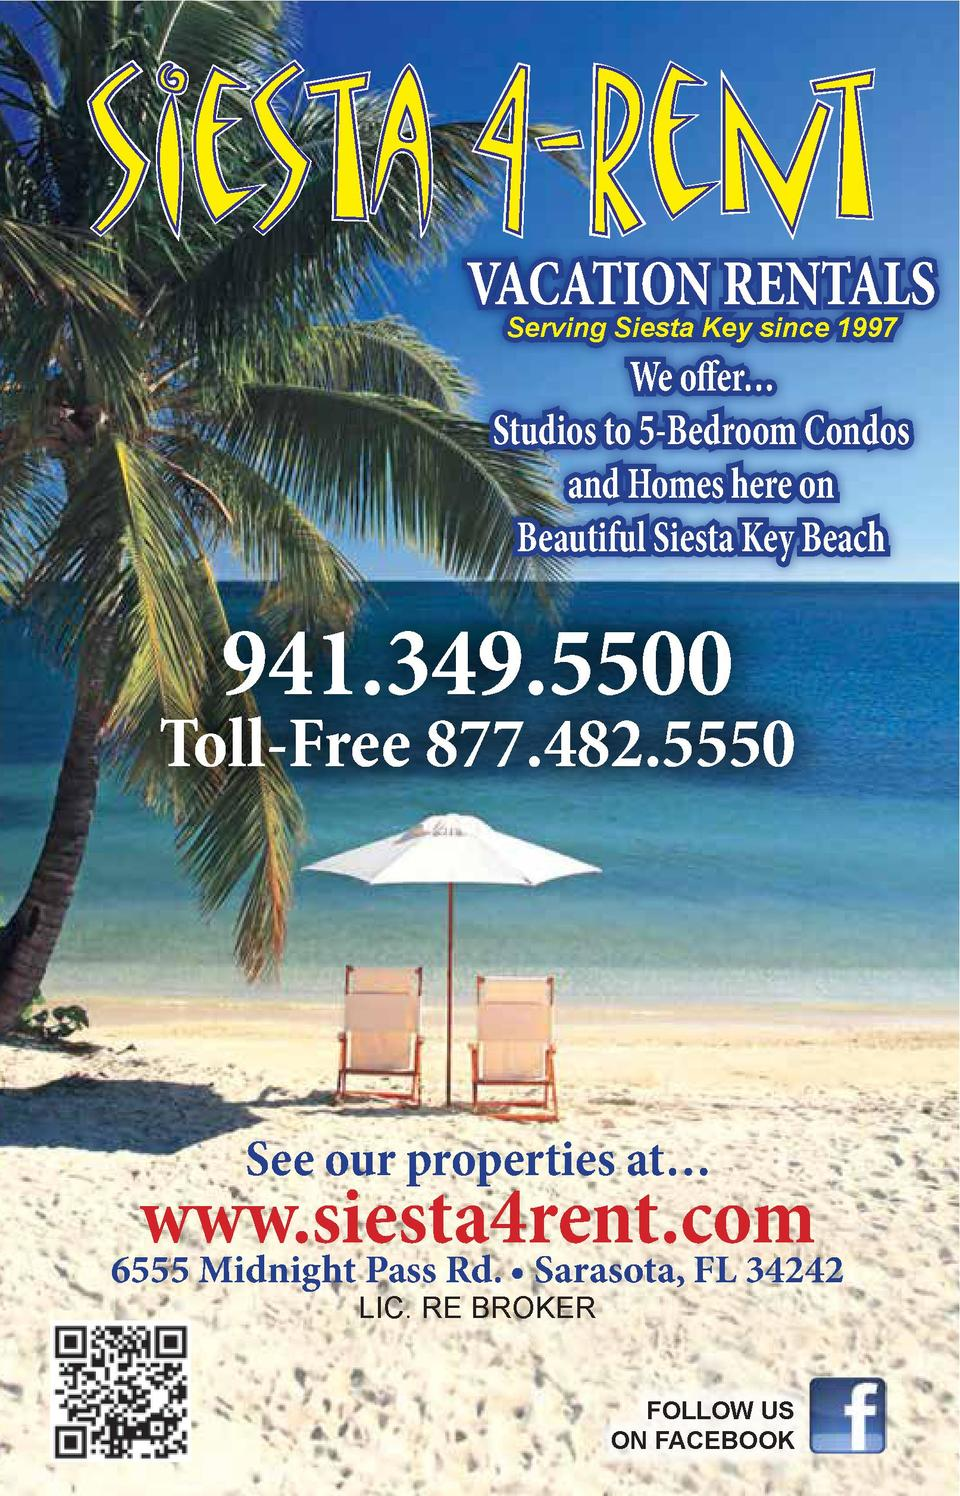 VACATION RENTALS Serving Siesta Key since 1997  We offer    Studios to 5-Bedroom Condos and Homes here on Beautiful Siesta...